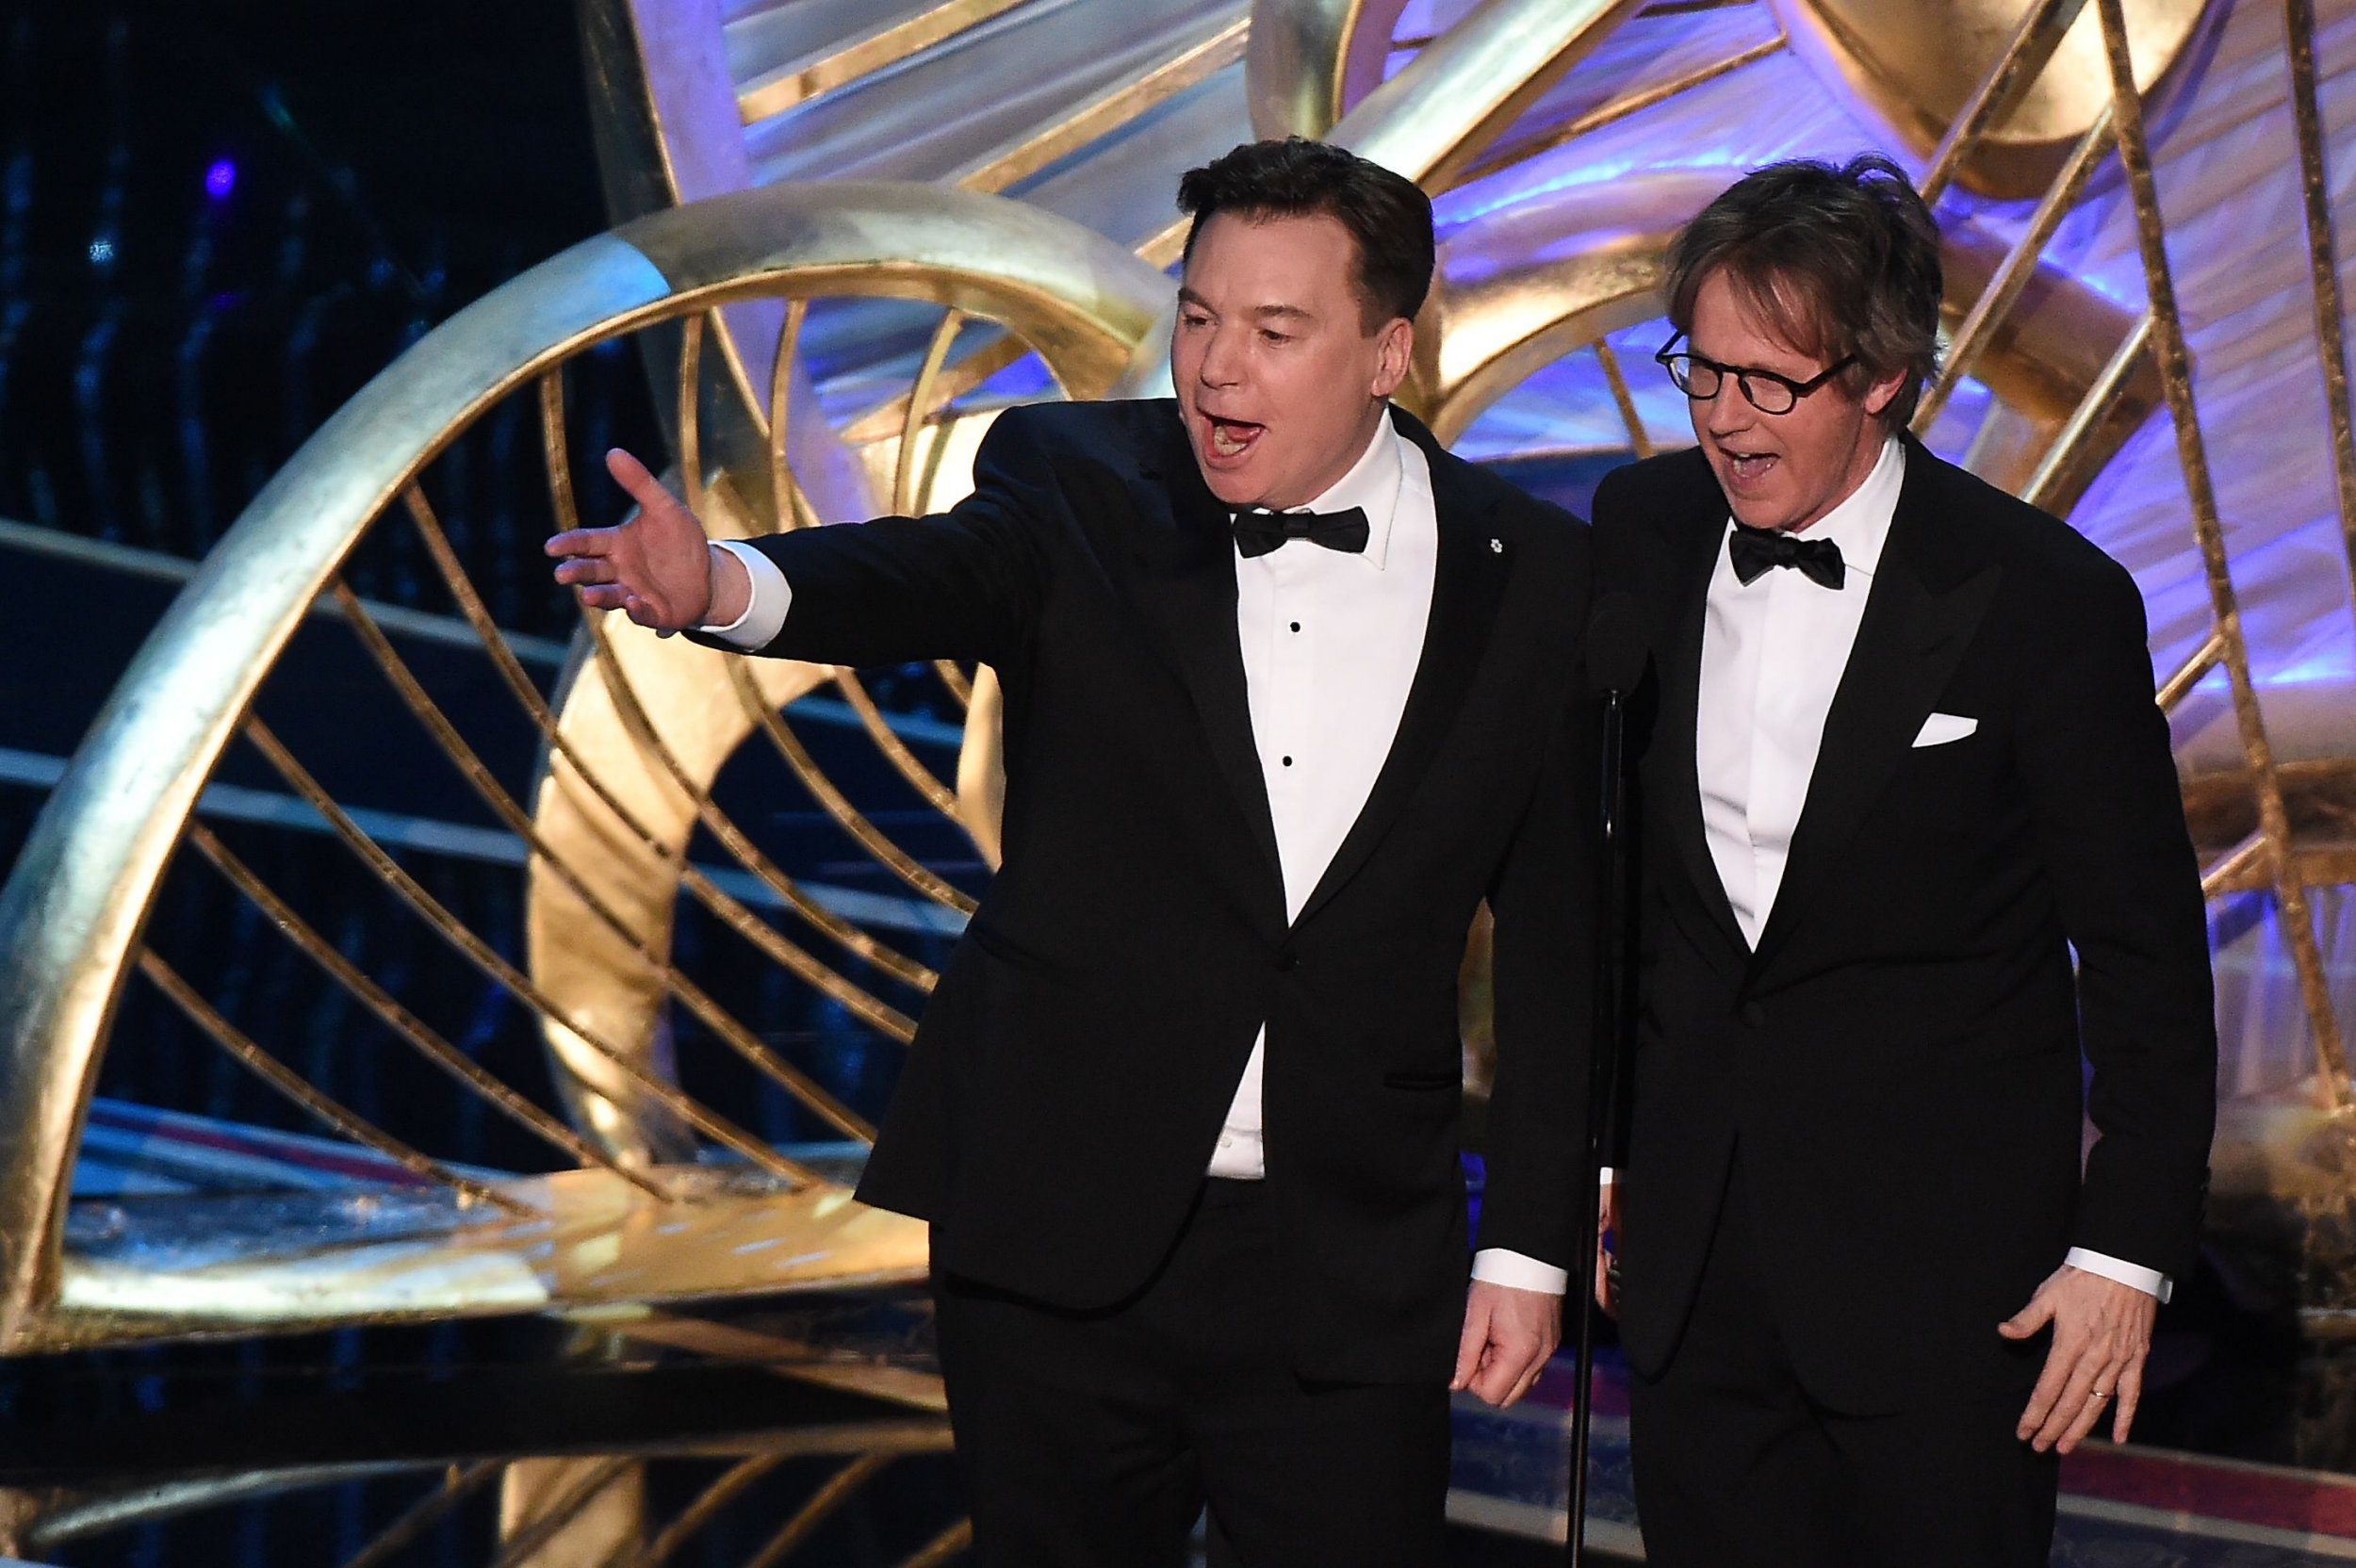 Mike Myers and Dana Carvey reunite on Oscars stage to joke about spew because Wayne's World